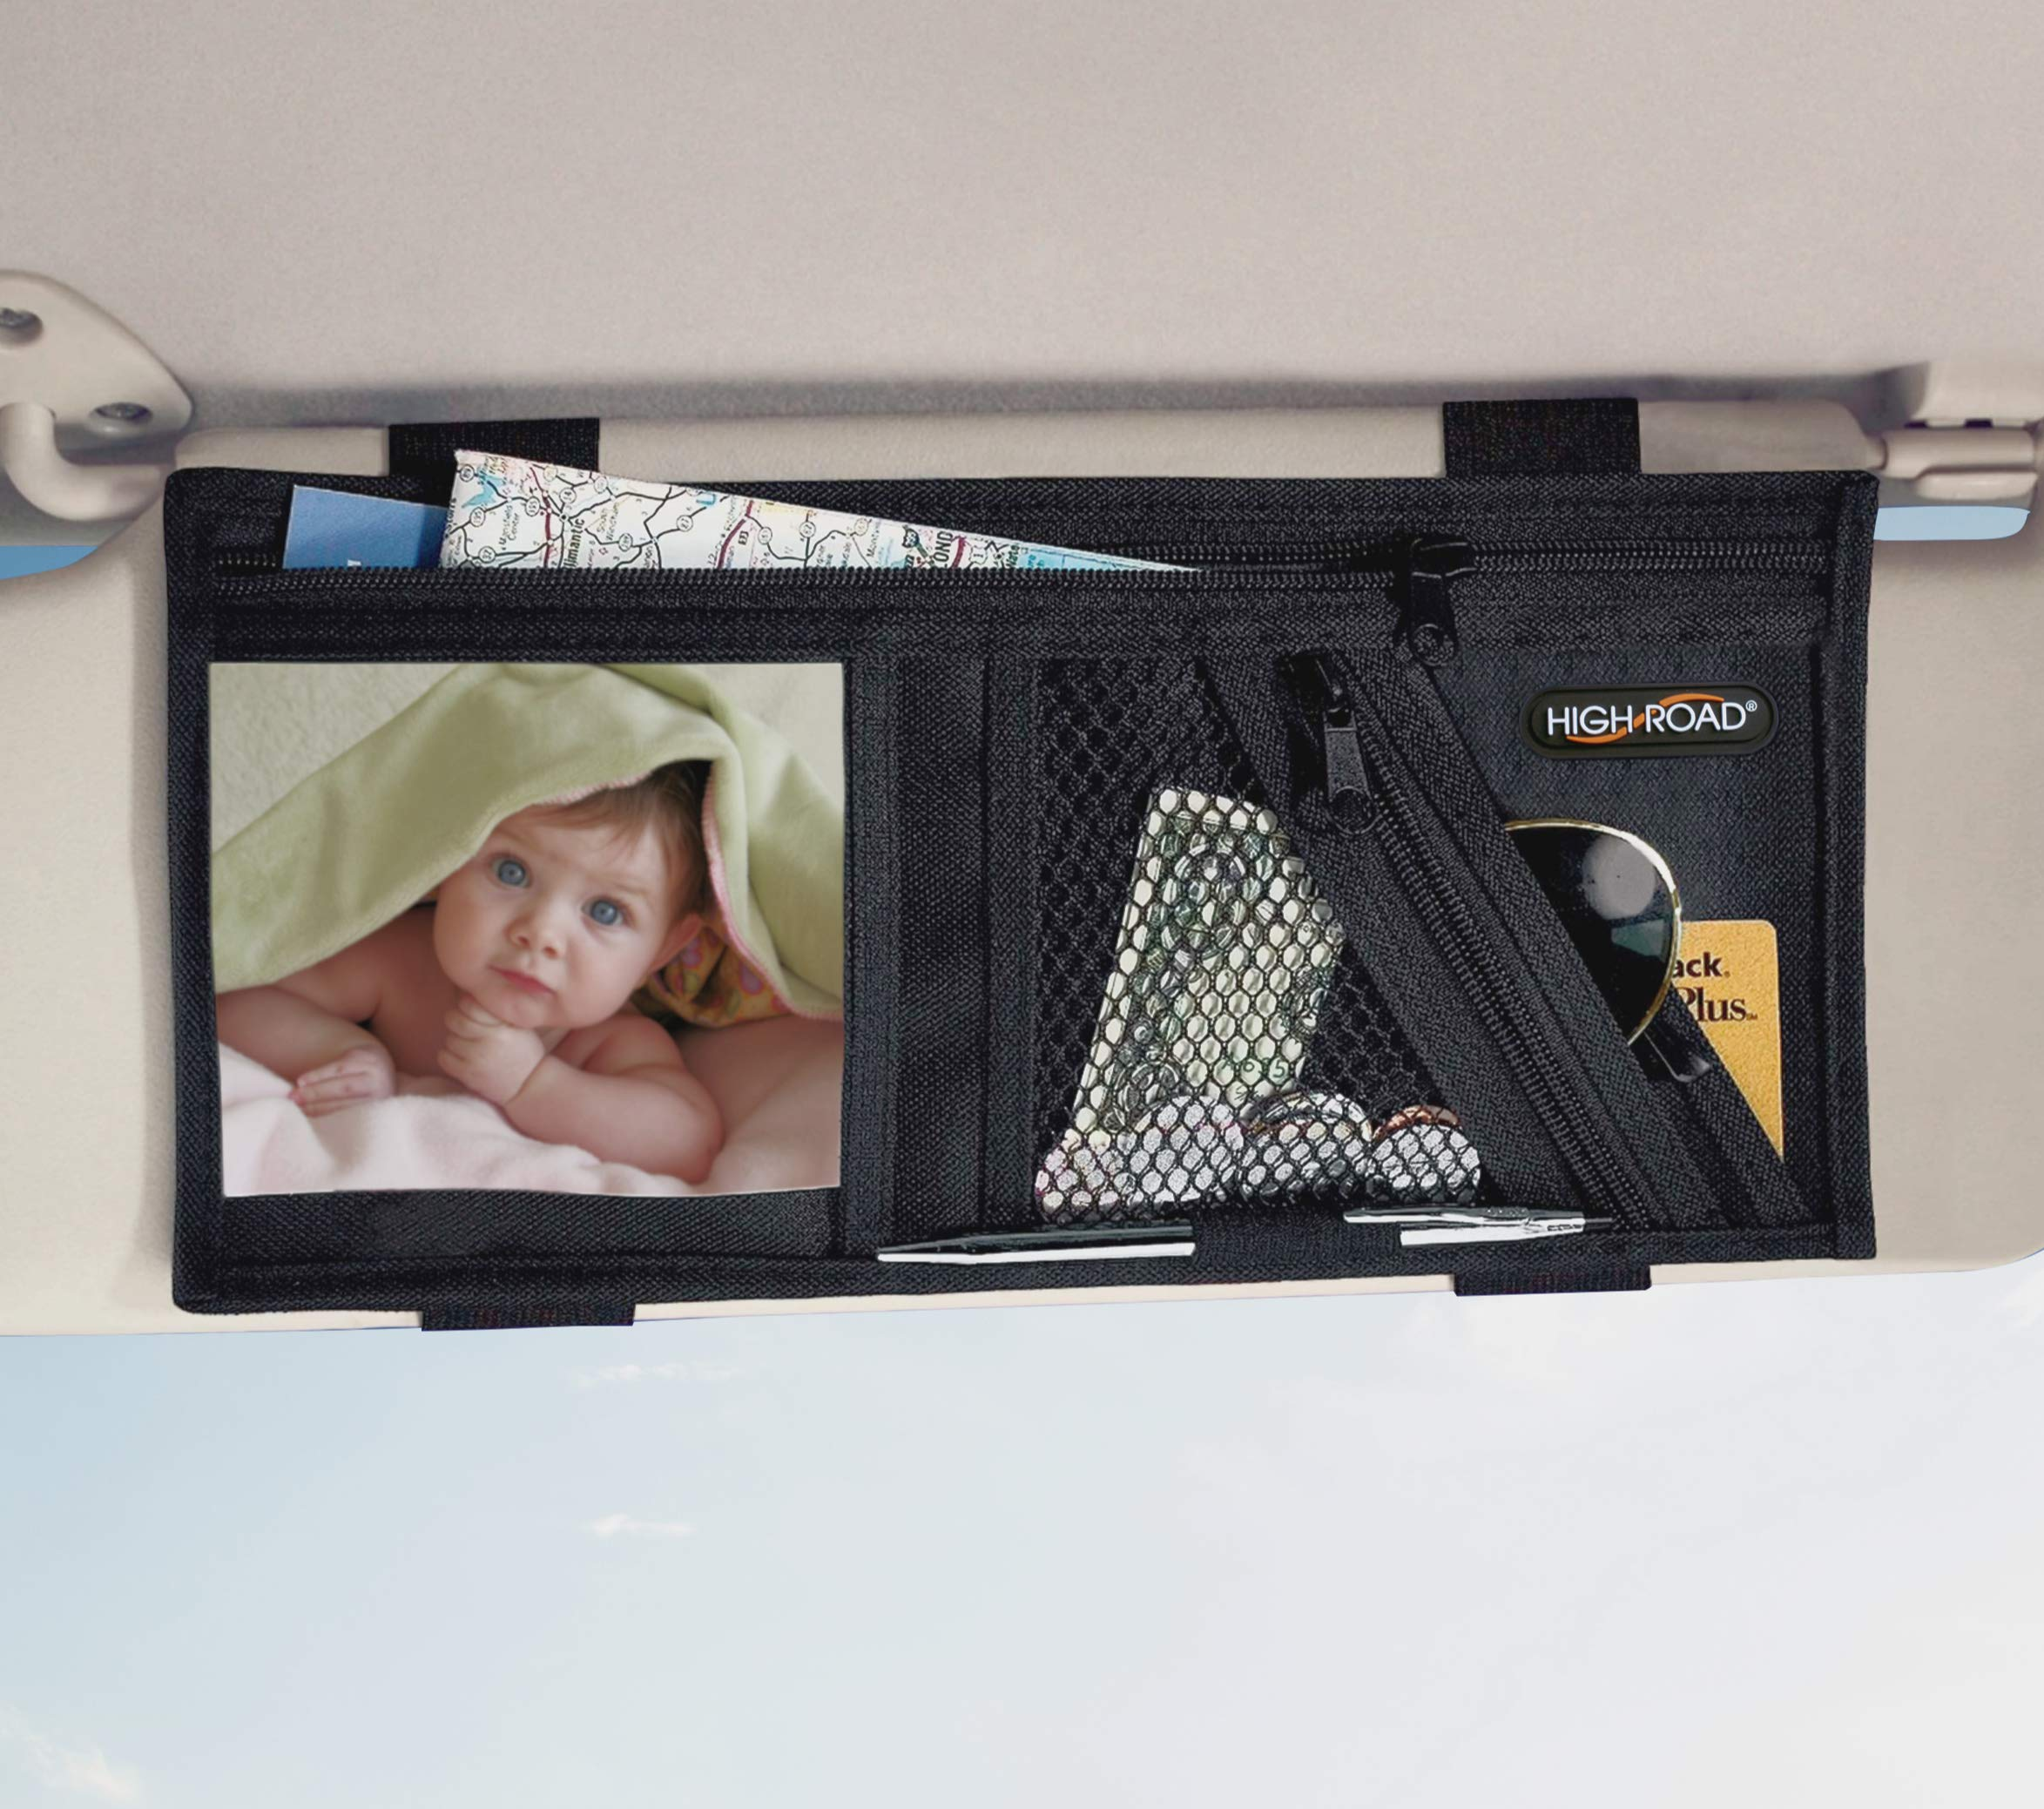 High Road Car Visor Organizer with Adjustable Straps by High Road